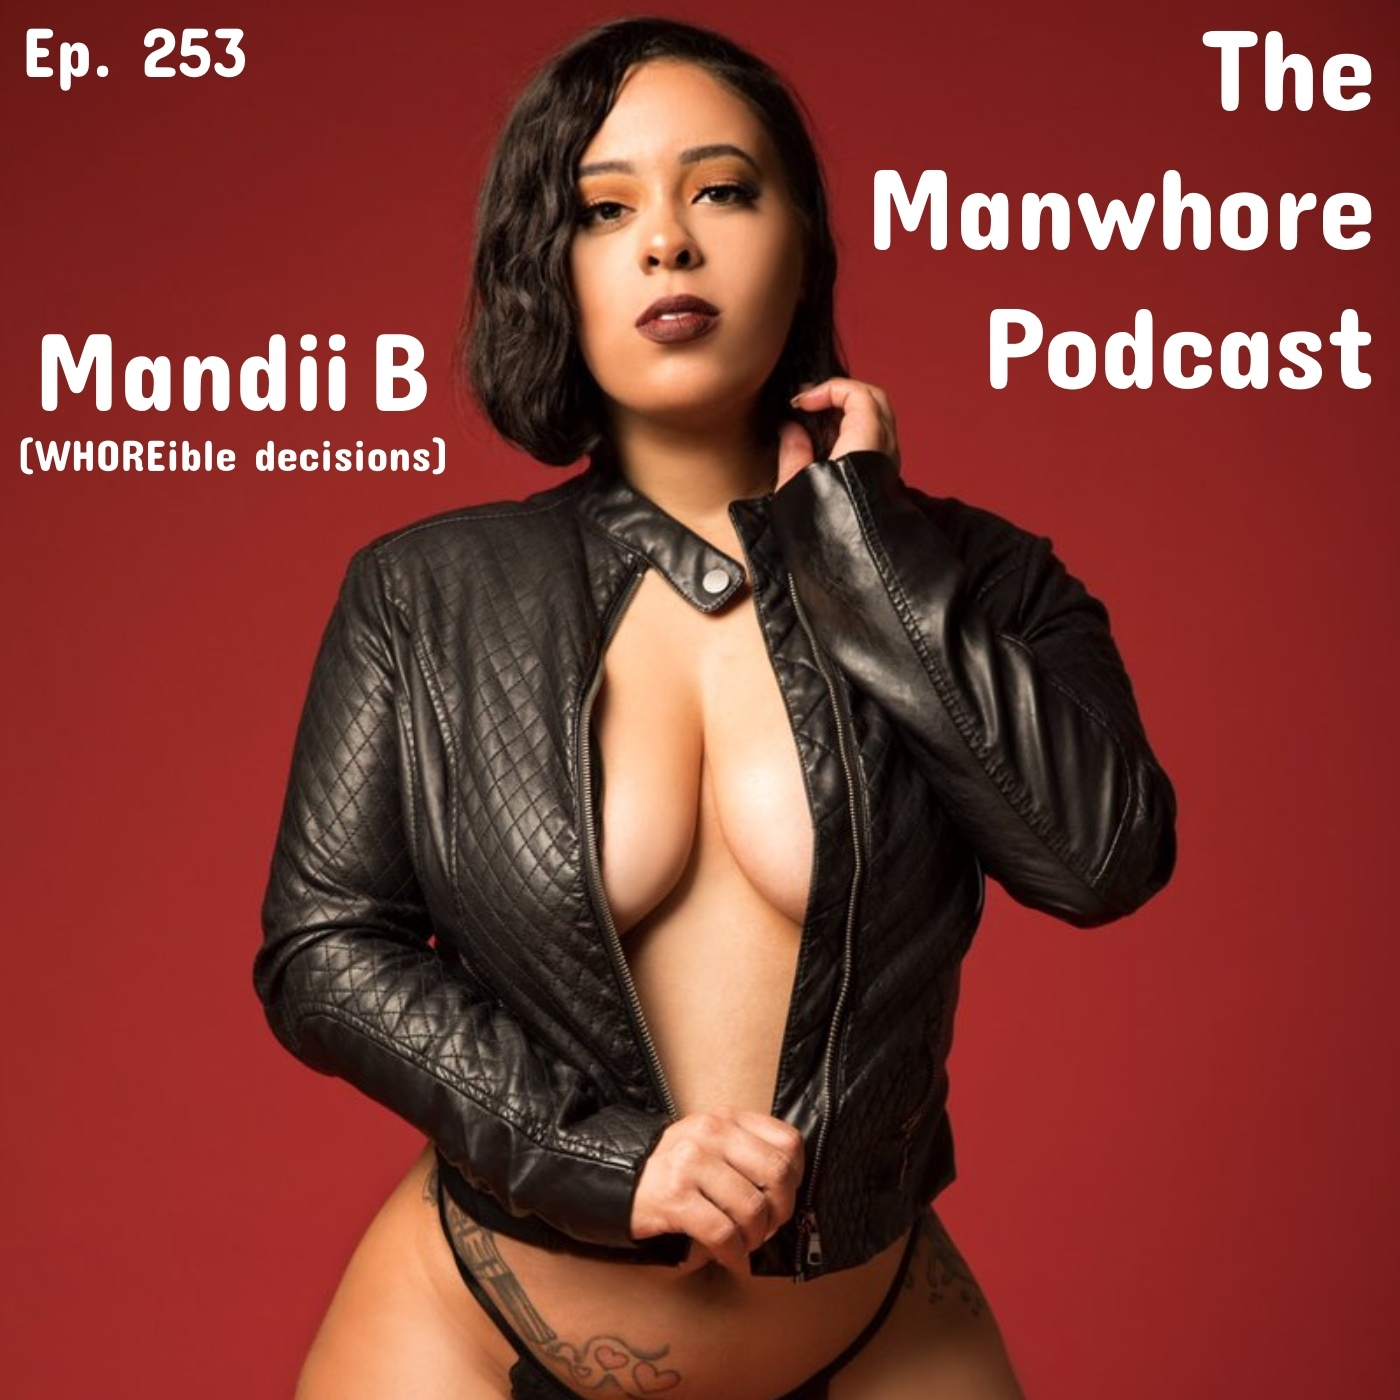 The Manwhore Podcast: A Sex-Positive Quest - Ep. 253: The Ethics of Shaving Your B*tthole with Mandii B (WHOREible decisions)